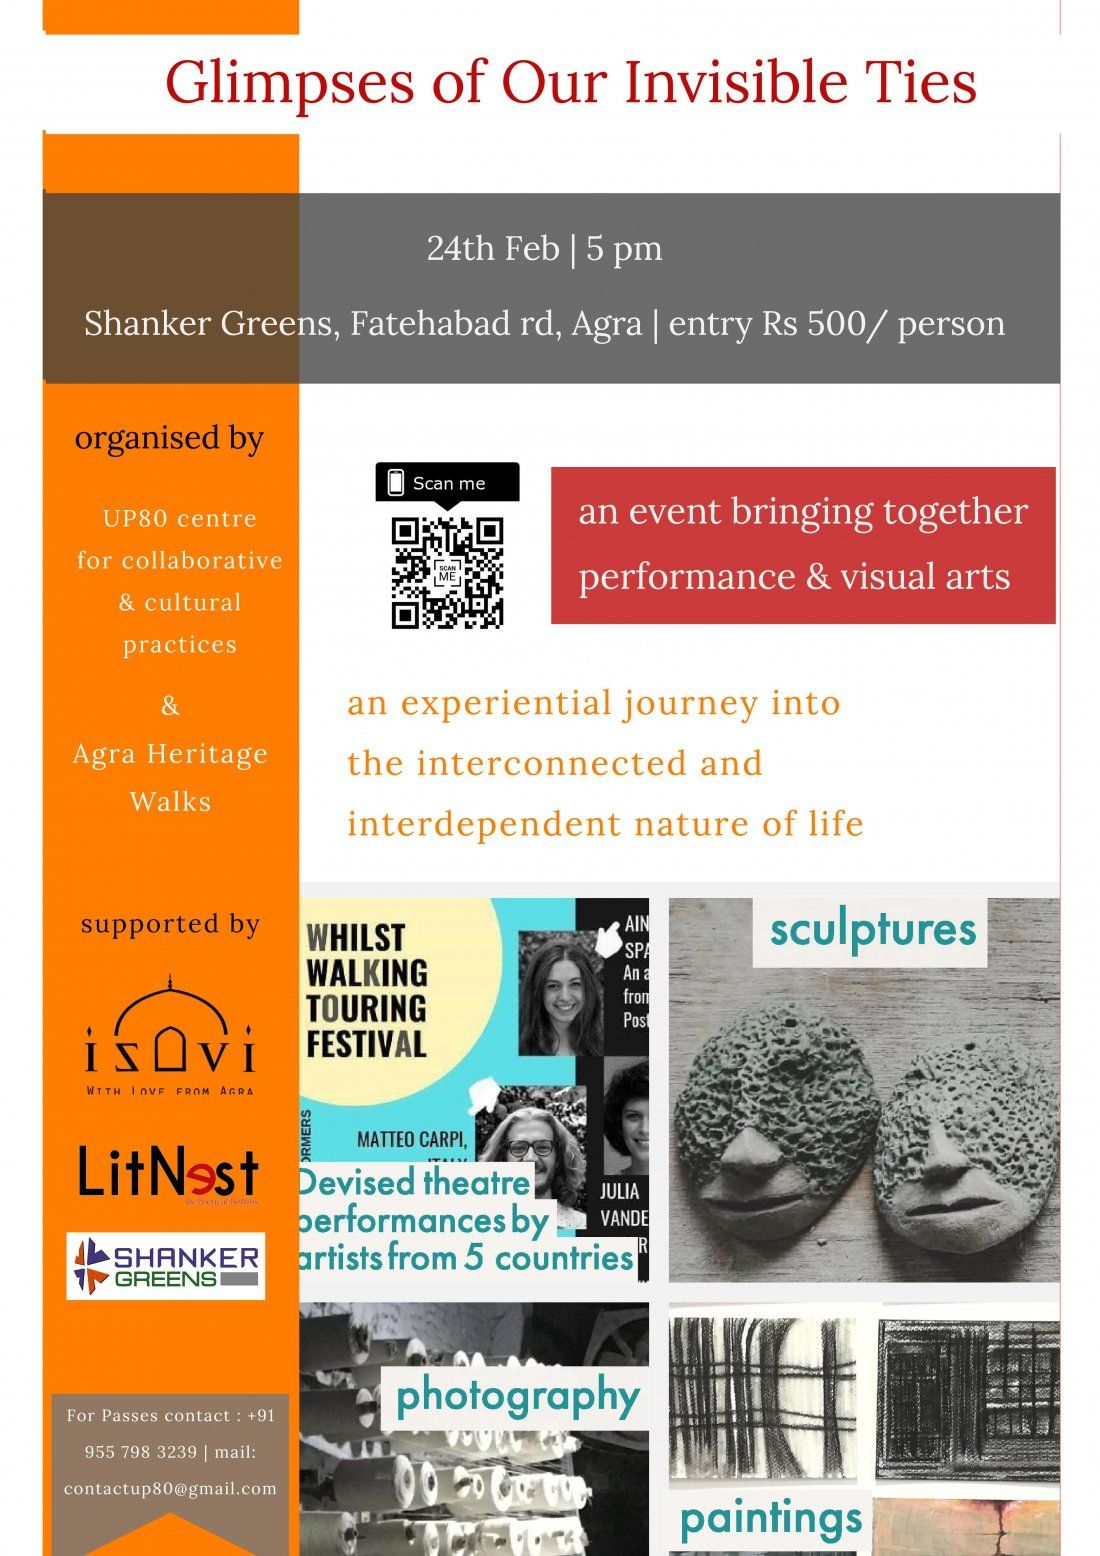 Glimpses Of Our Invisible Ties - Art & Theatre Show